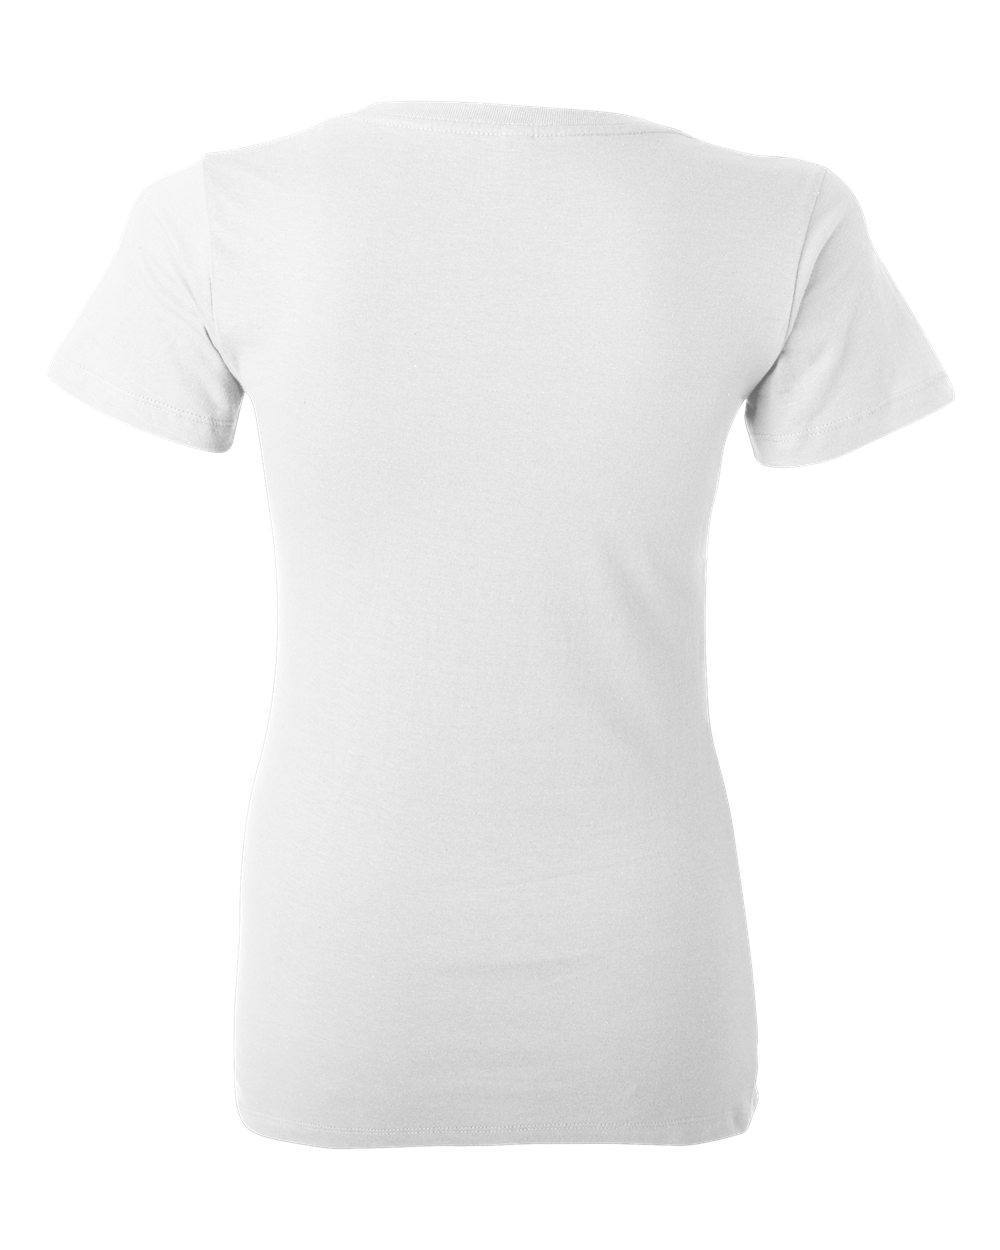 Bella-Canvas-Women-039-s-Jersey-Short-Sleeve-Deep-V-Neck-T-Shirt-B6035-S-2XL thumbnail 64